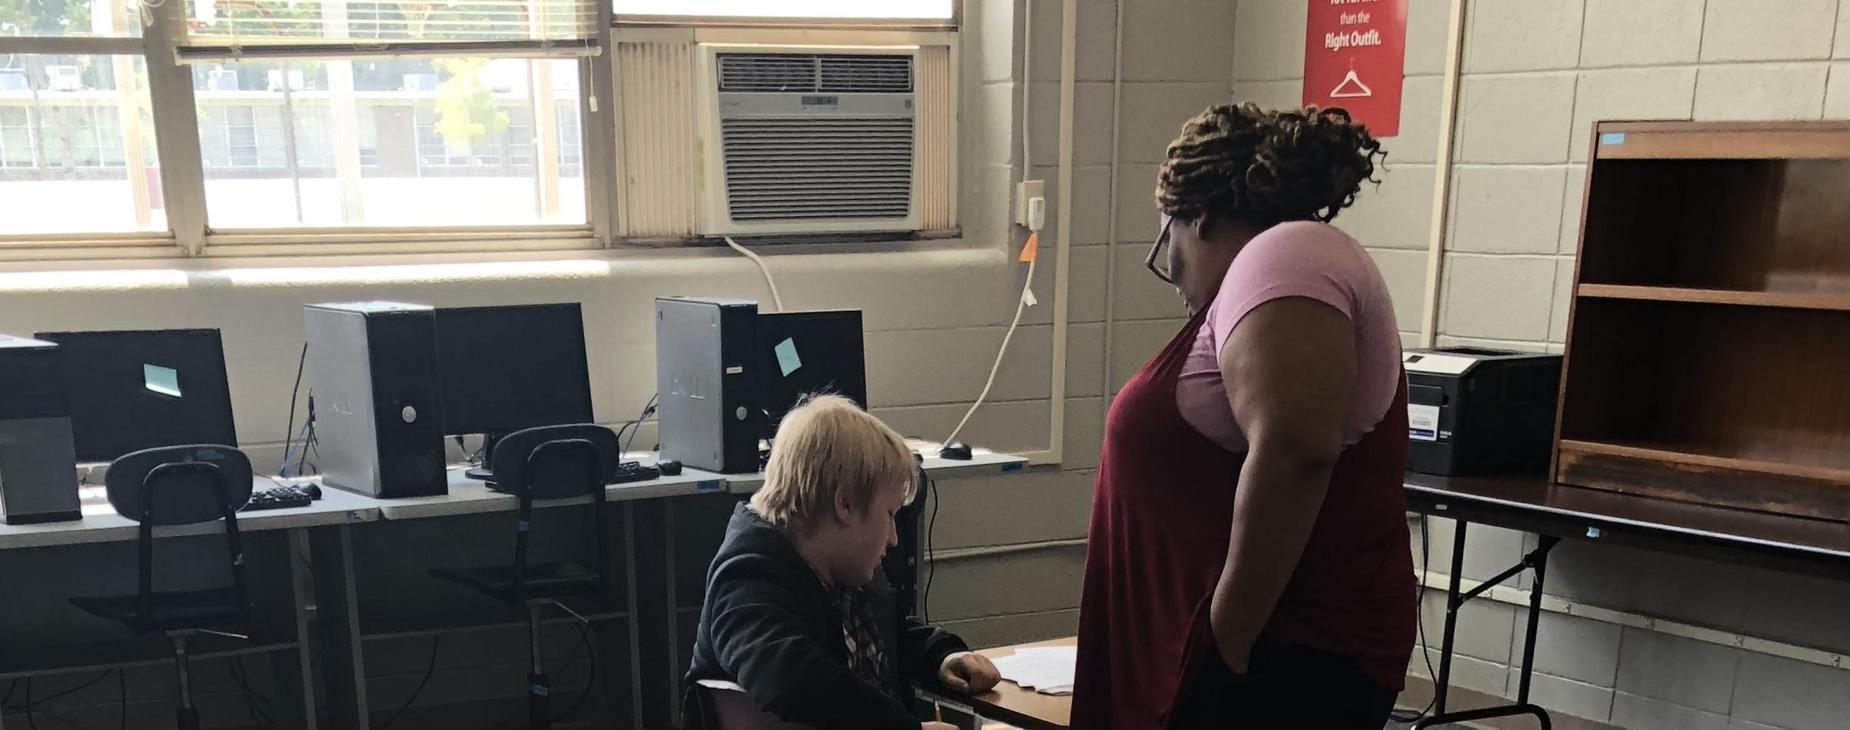 Ms. Dooley engaged with student.